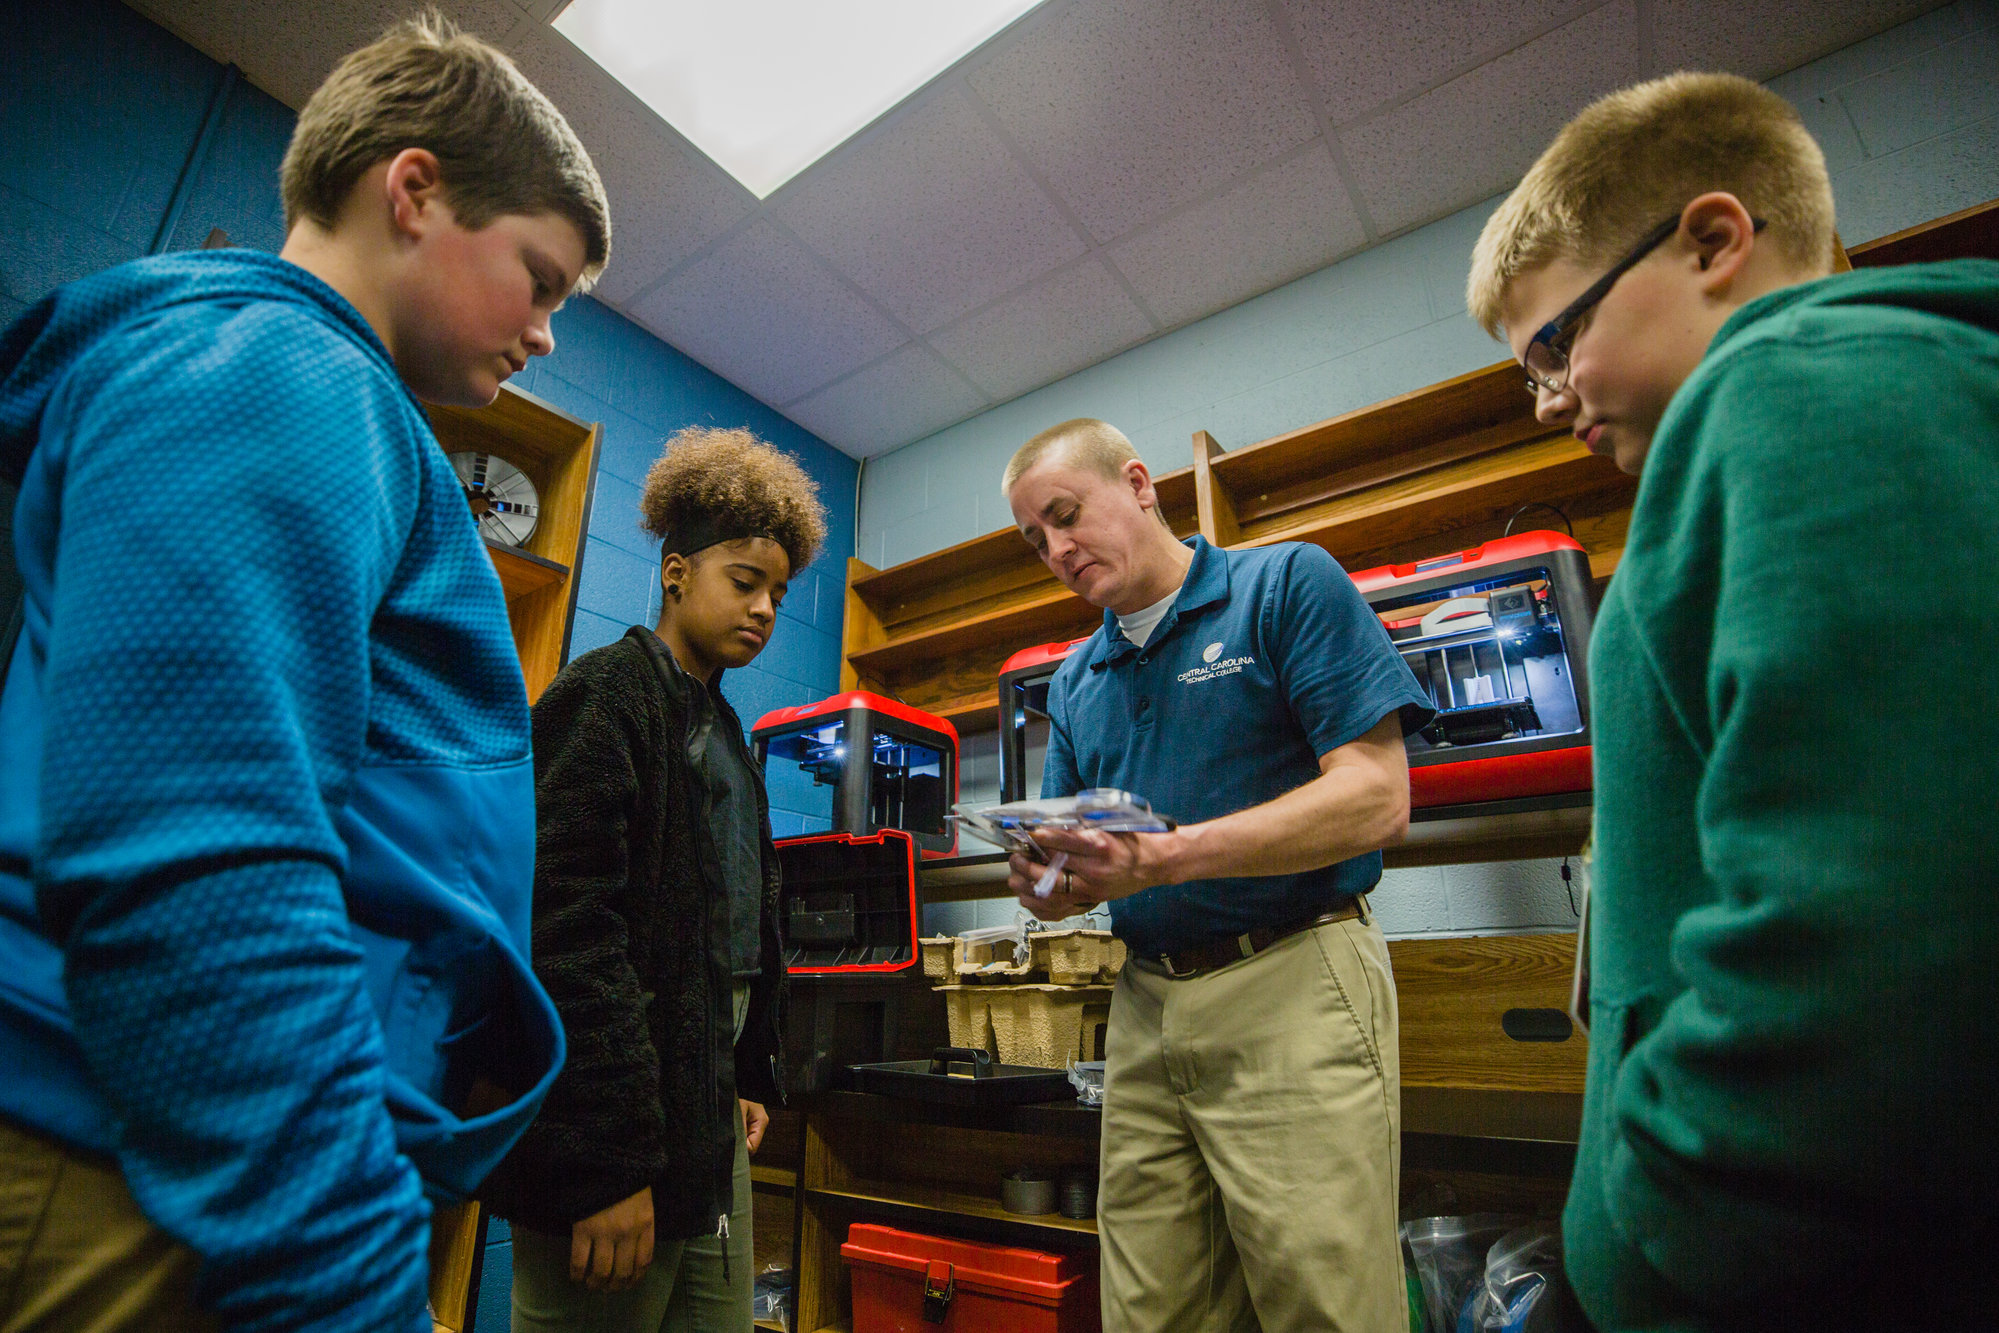 Central Carolina Technical College Engineering Design Technology Program Manager David Tuders explains parts of the new 3D printer Wednesday at ADMS.